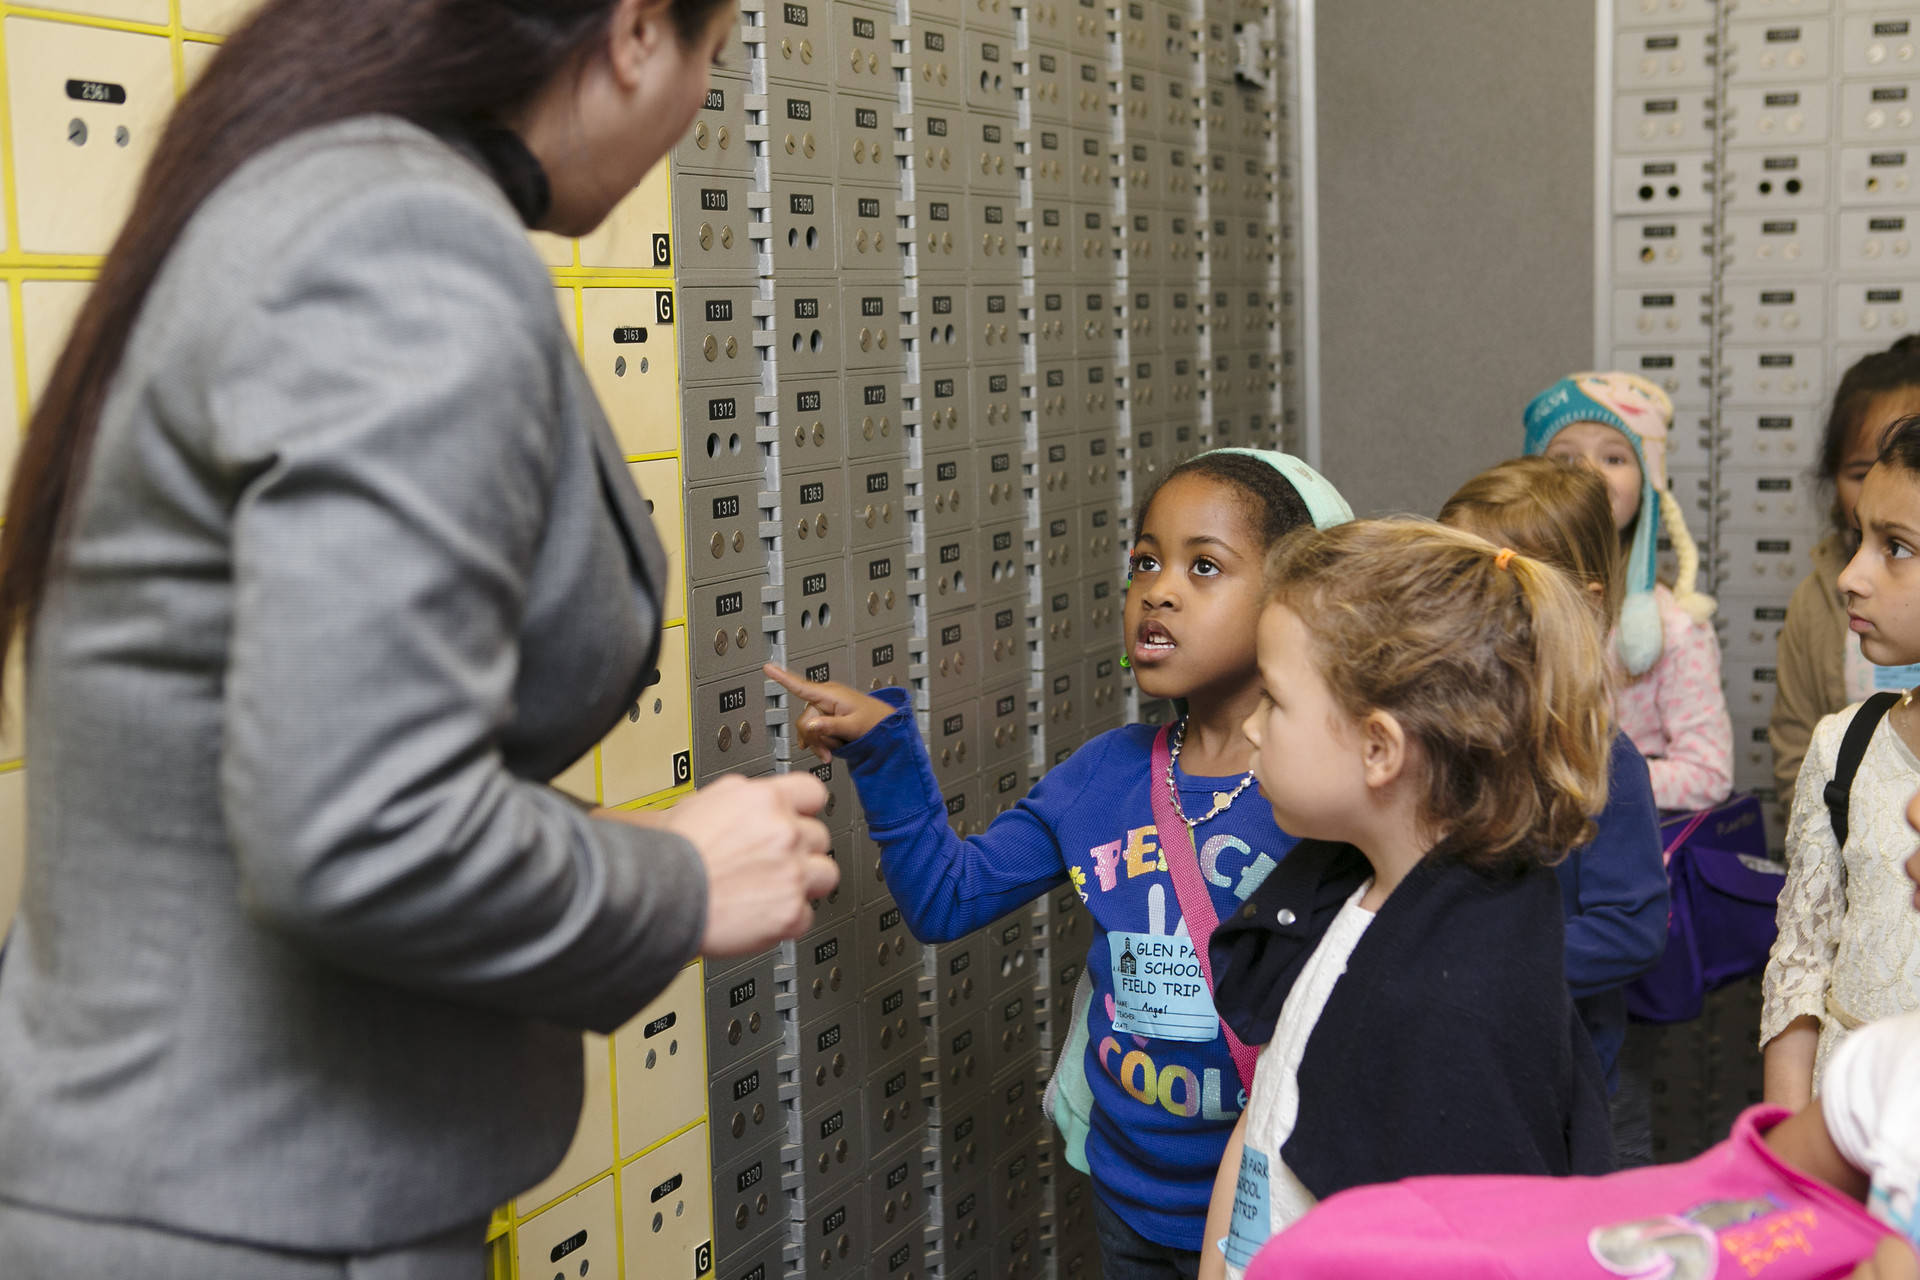 San Francisco kindergartners take a field trip to the bank in 2016 as part of the city's Kindergarten to College savings program. Kara Brodgesell, courtesy of the San Francisco Treasurer's Office